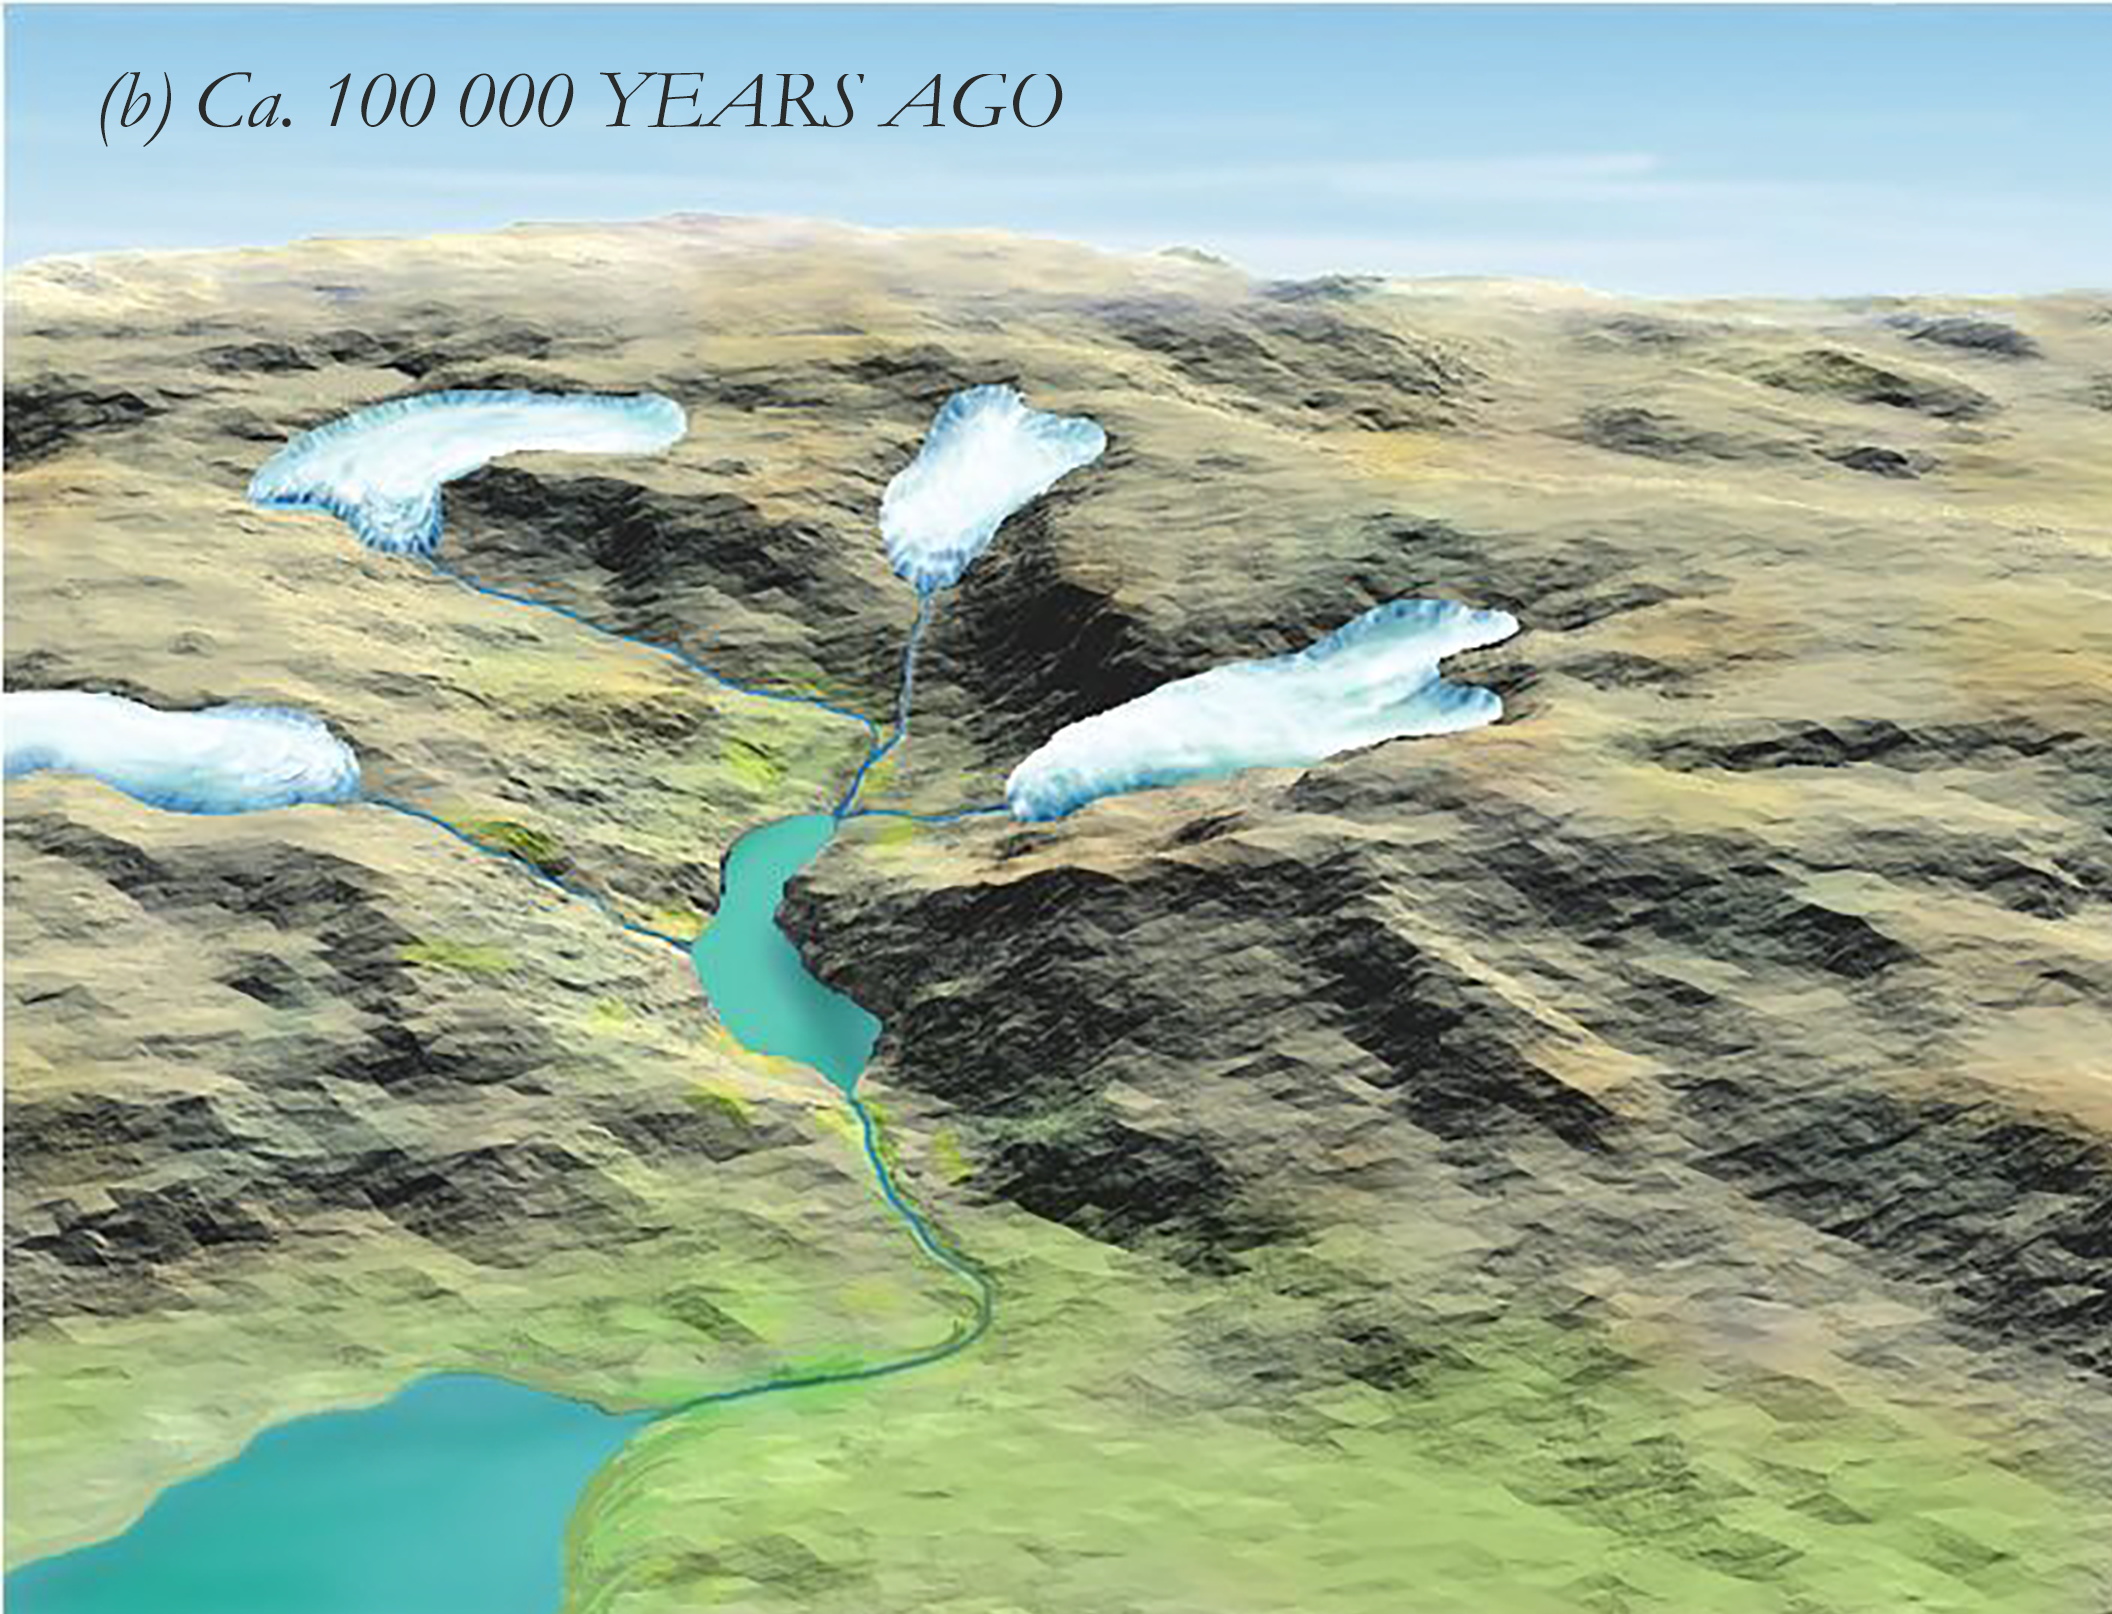 Creation of the landscape in the Isdal-region. (b) Approx. 100 000 years ago.